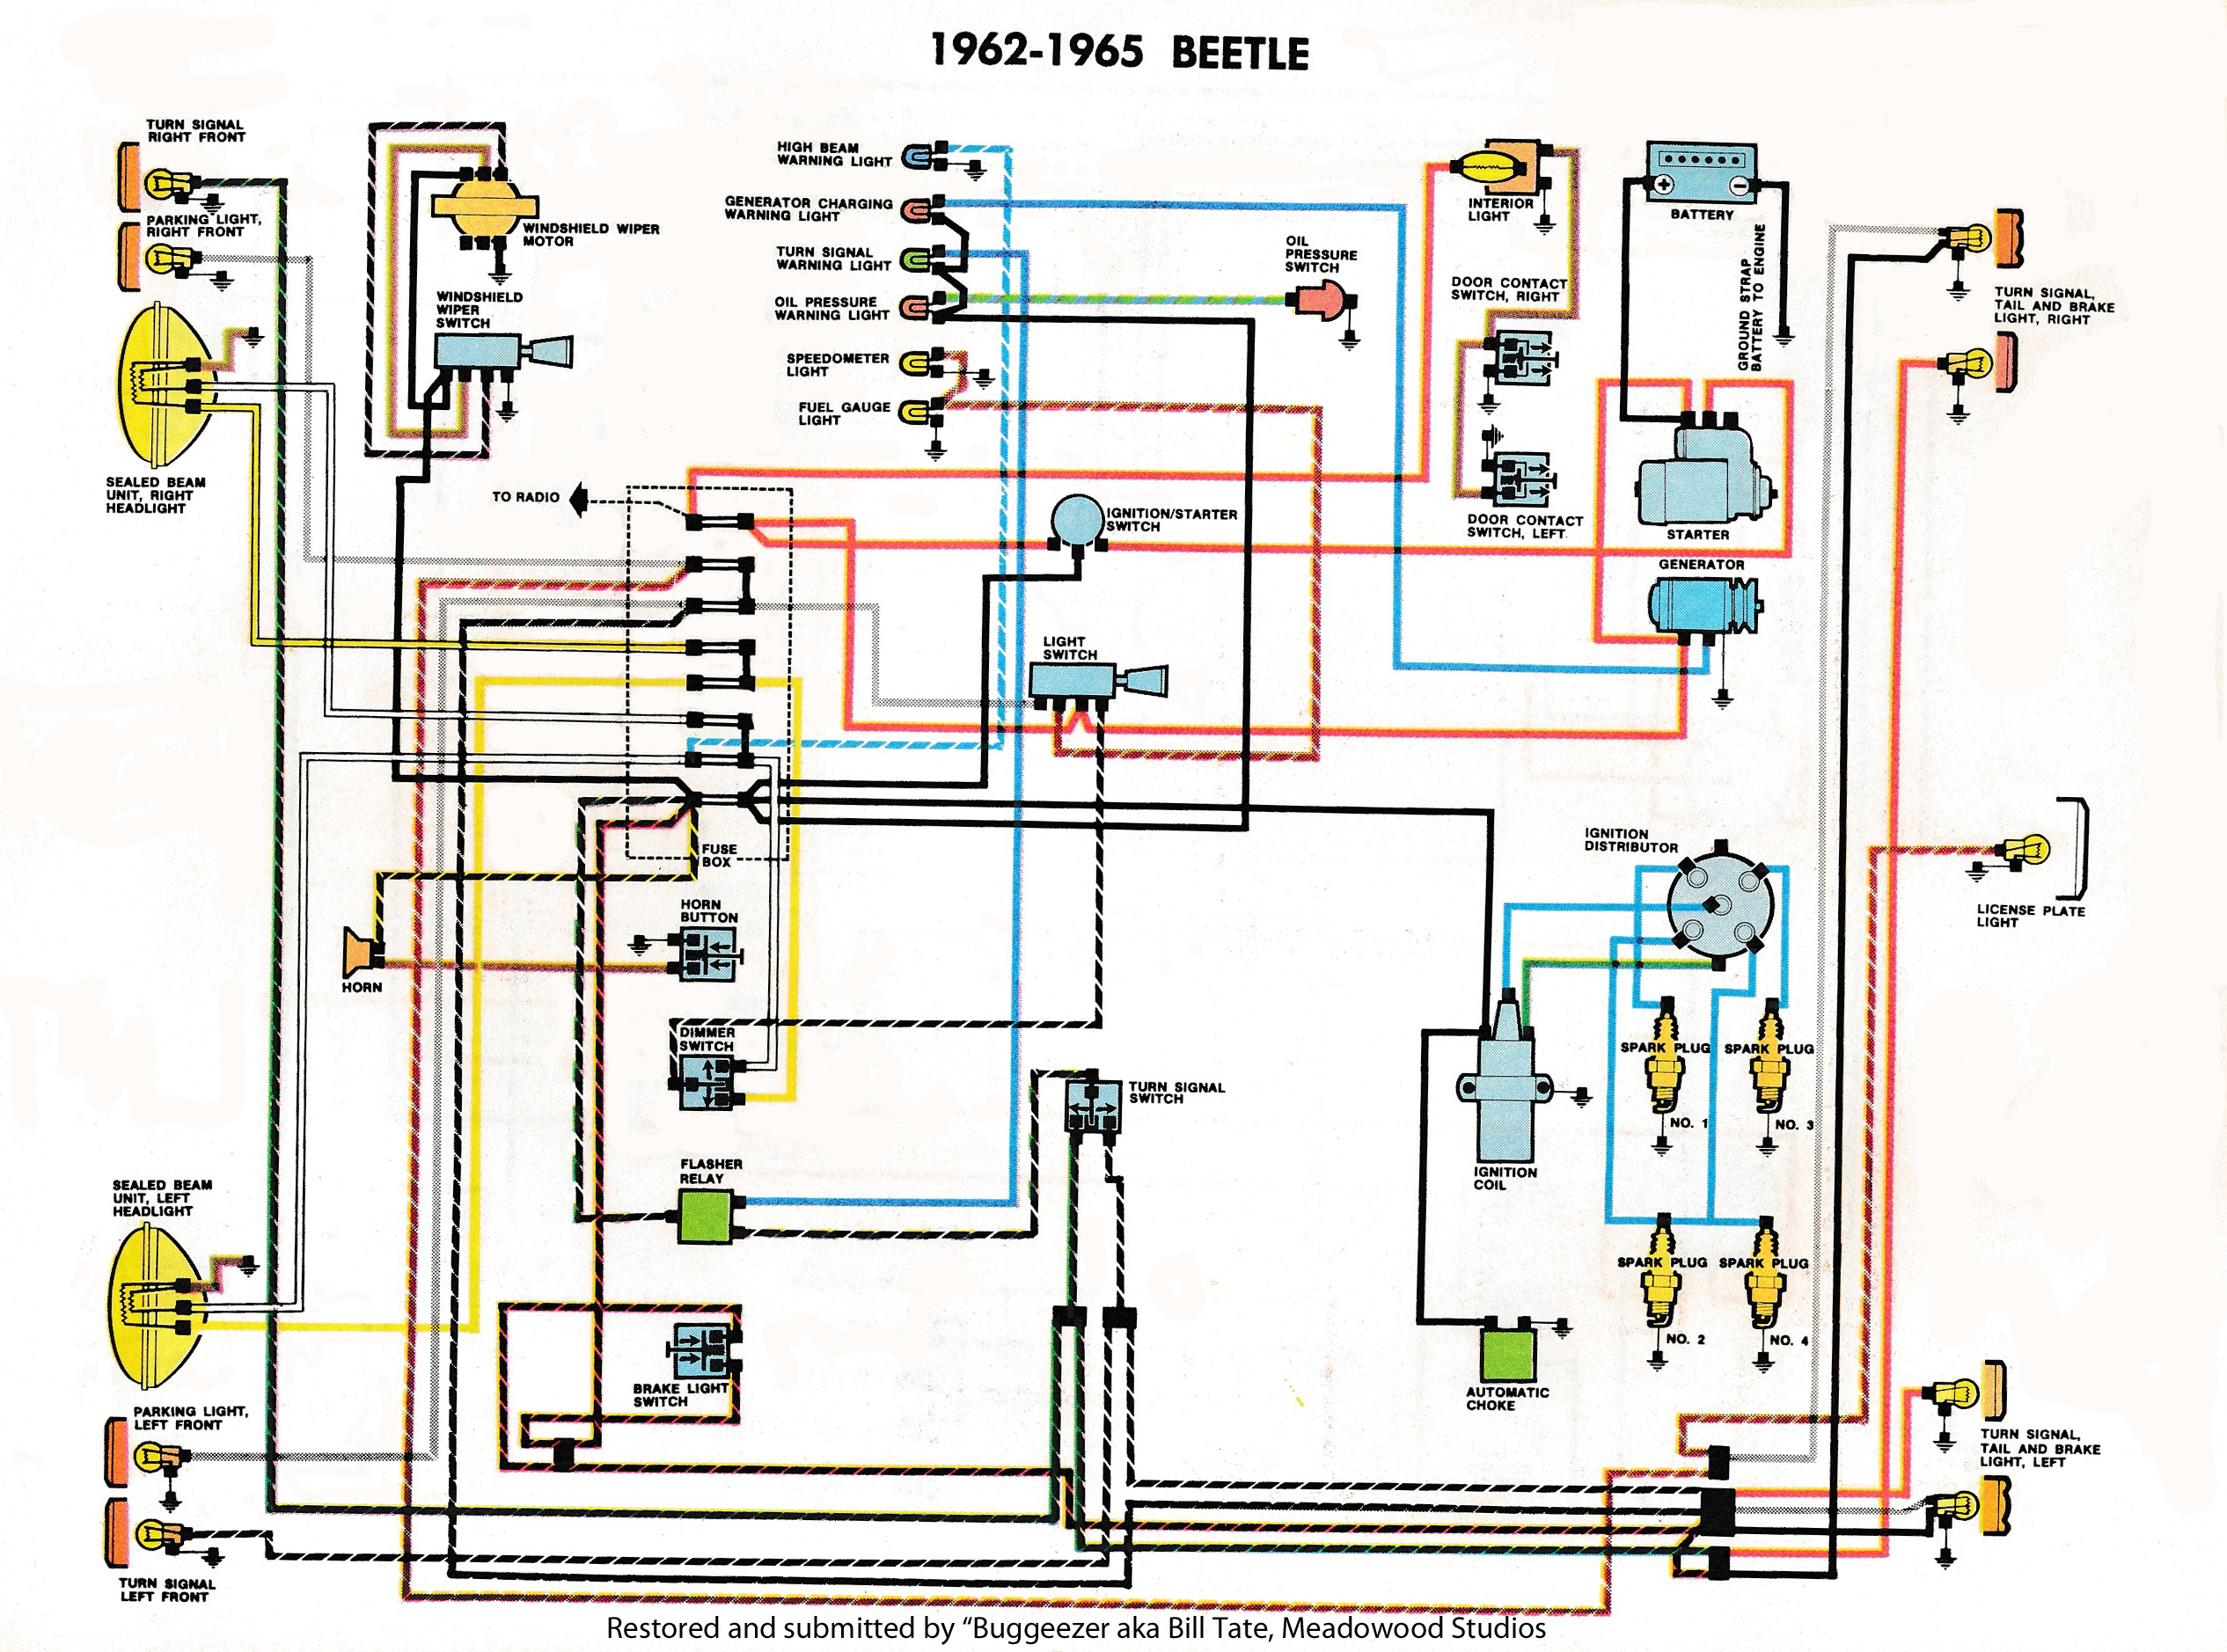 71 Super Beetle Wiring Diagram Free For You Mustang Regulator Thesamba Com Type 1 Diagrams Rh Interior Dash 1971 Vw